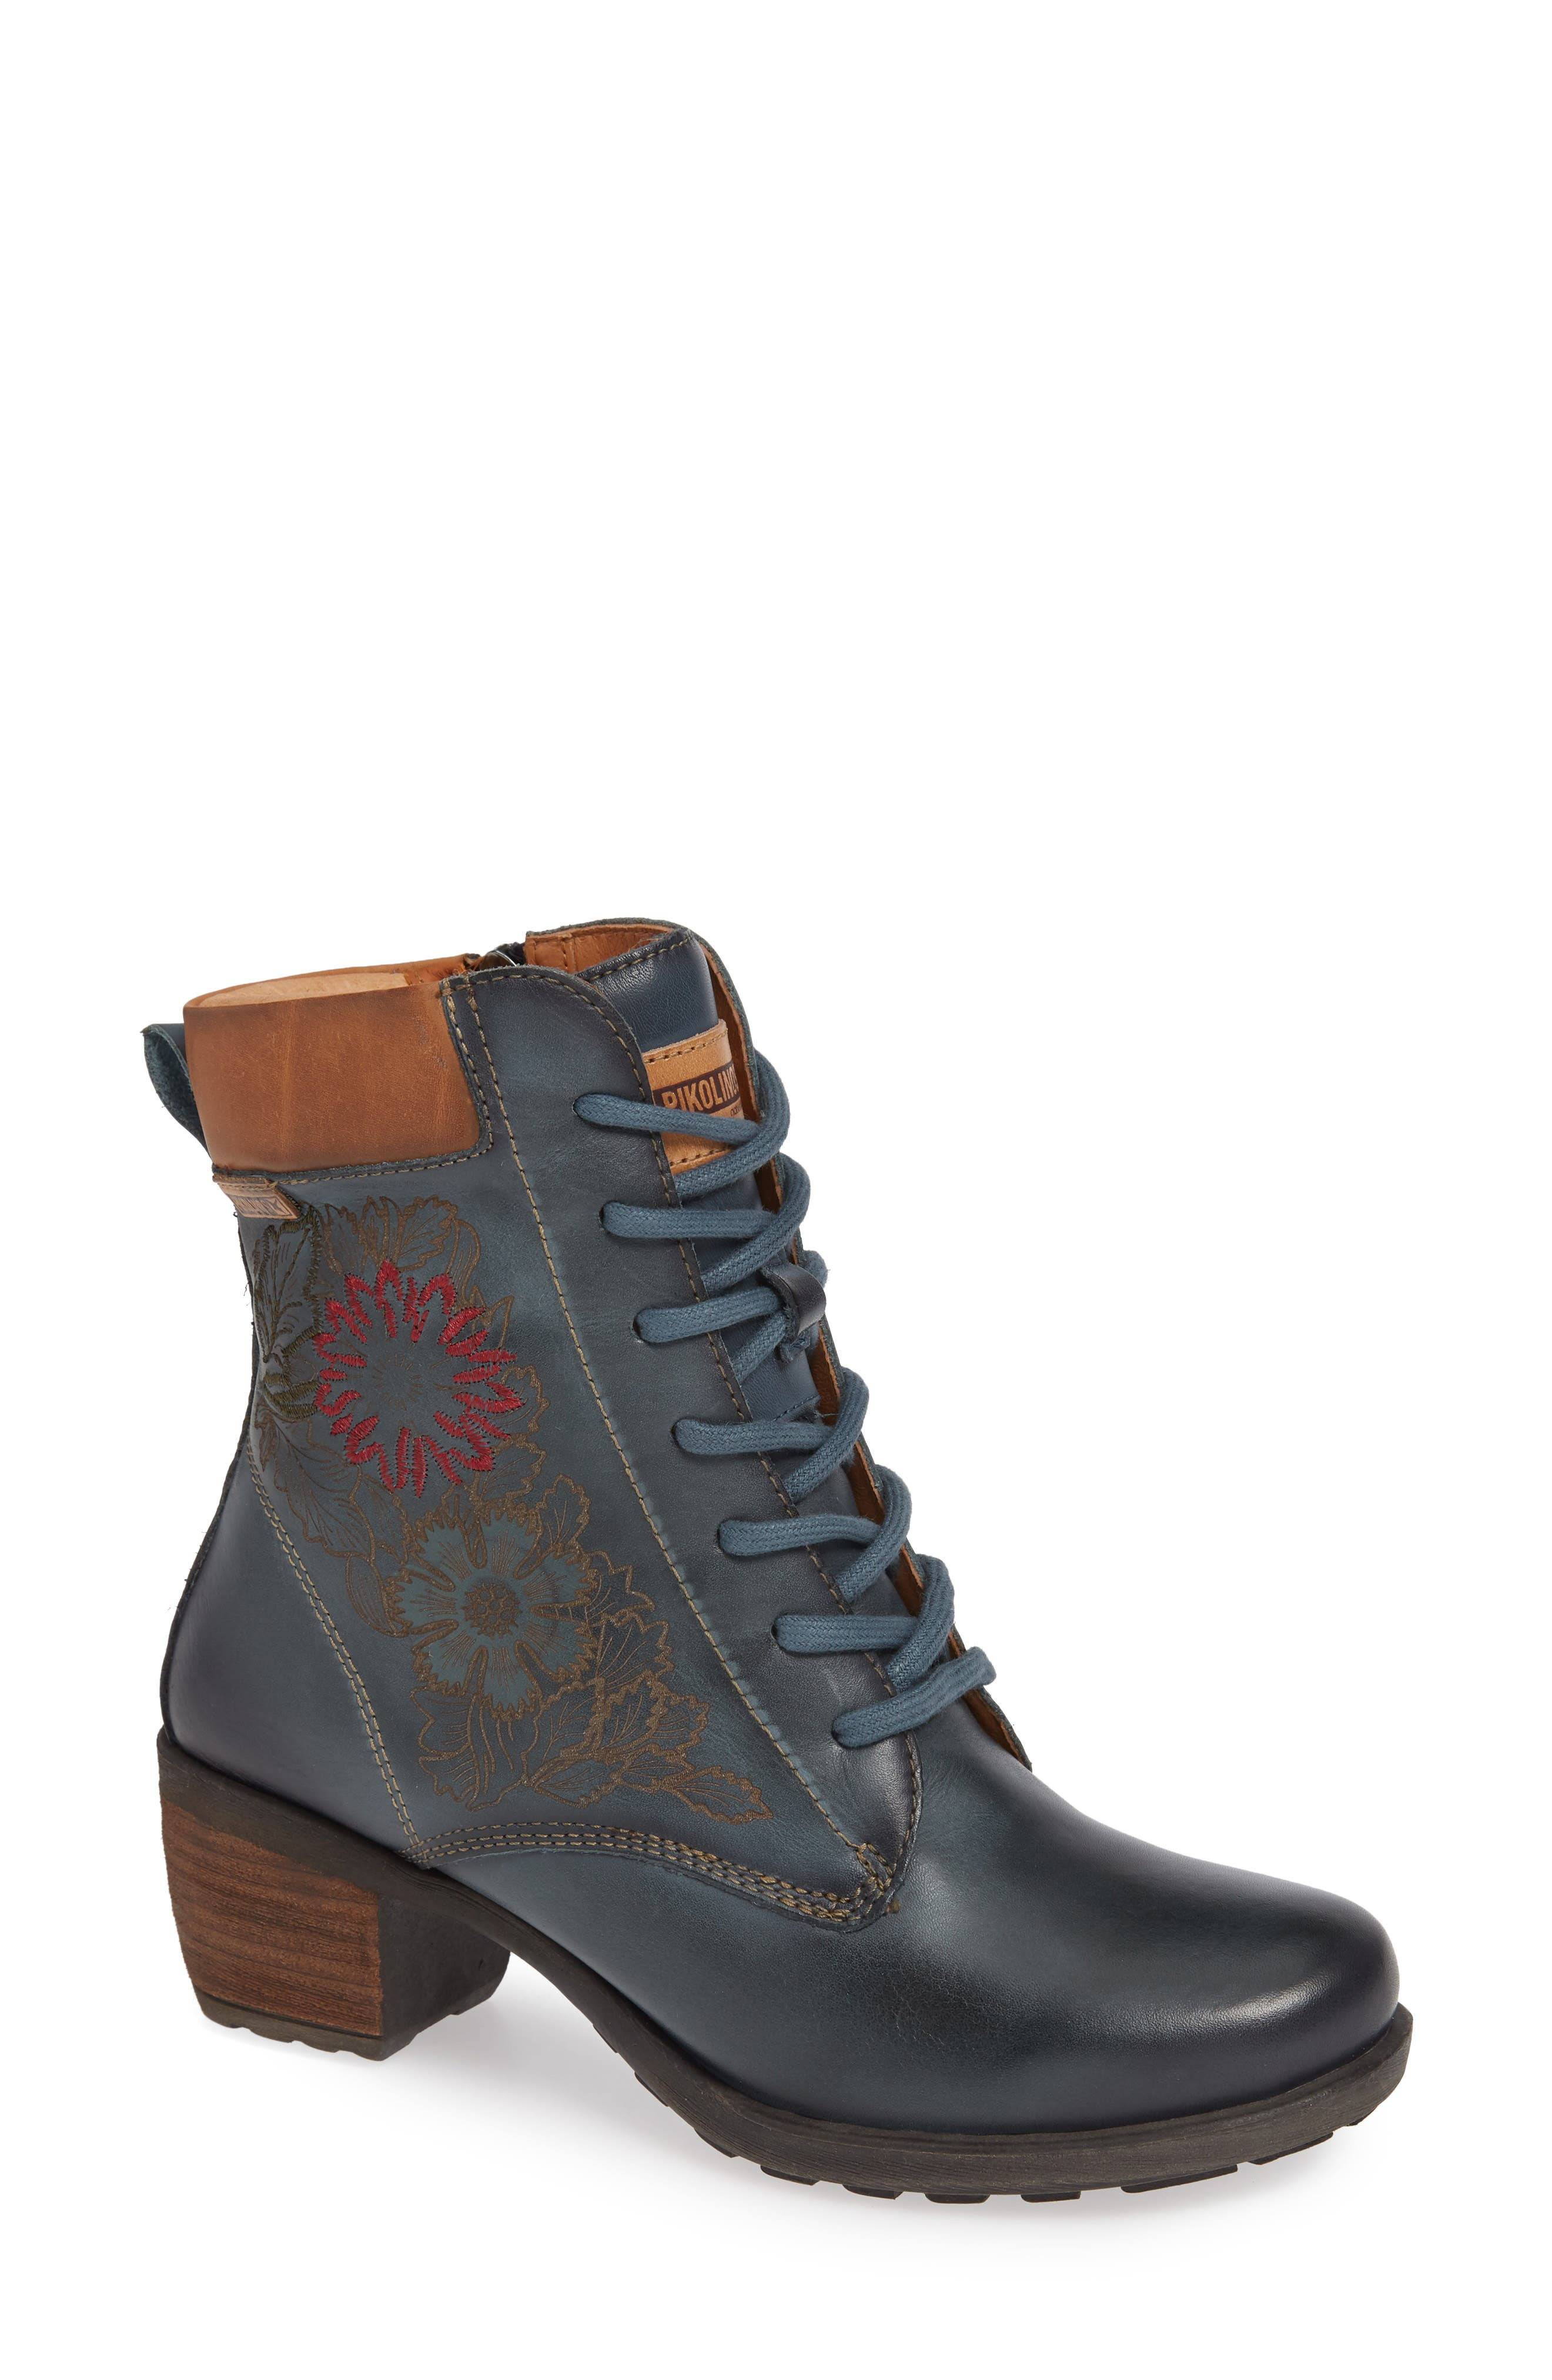 Le Mans Embroidered Lace-Up Bootie,                             Main thumbnail 1, color,                             OCEAN LEATHER